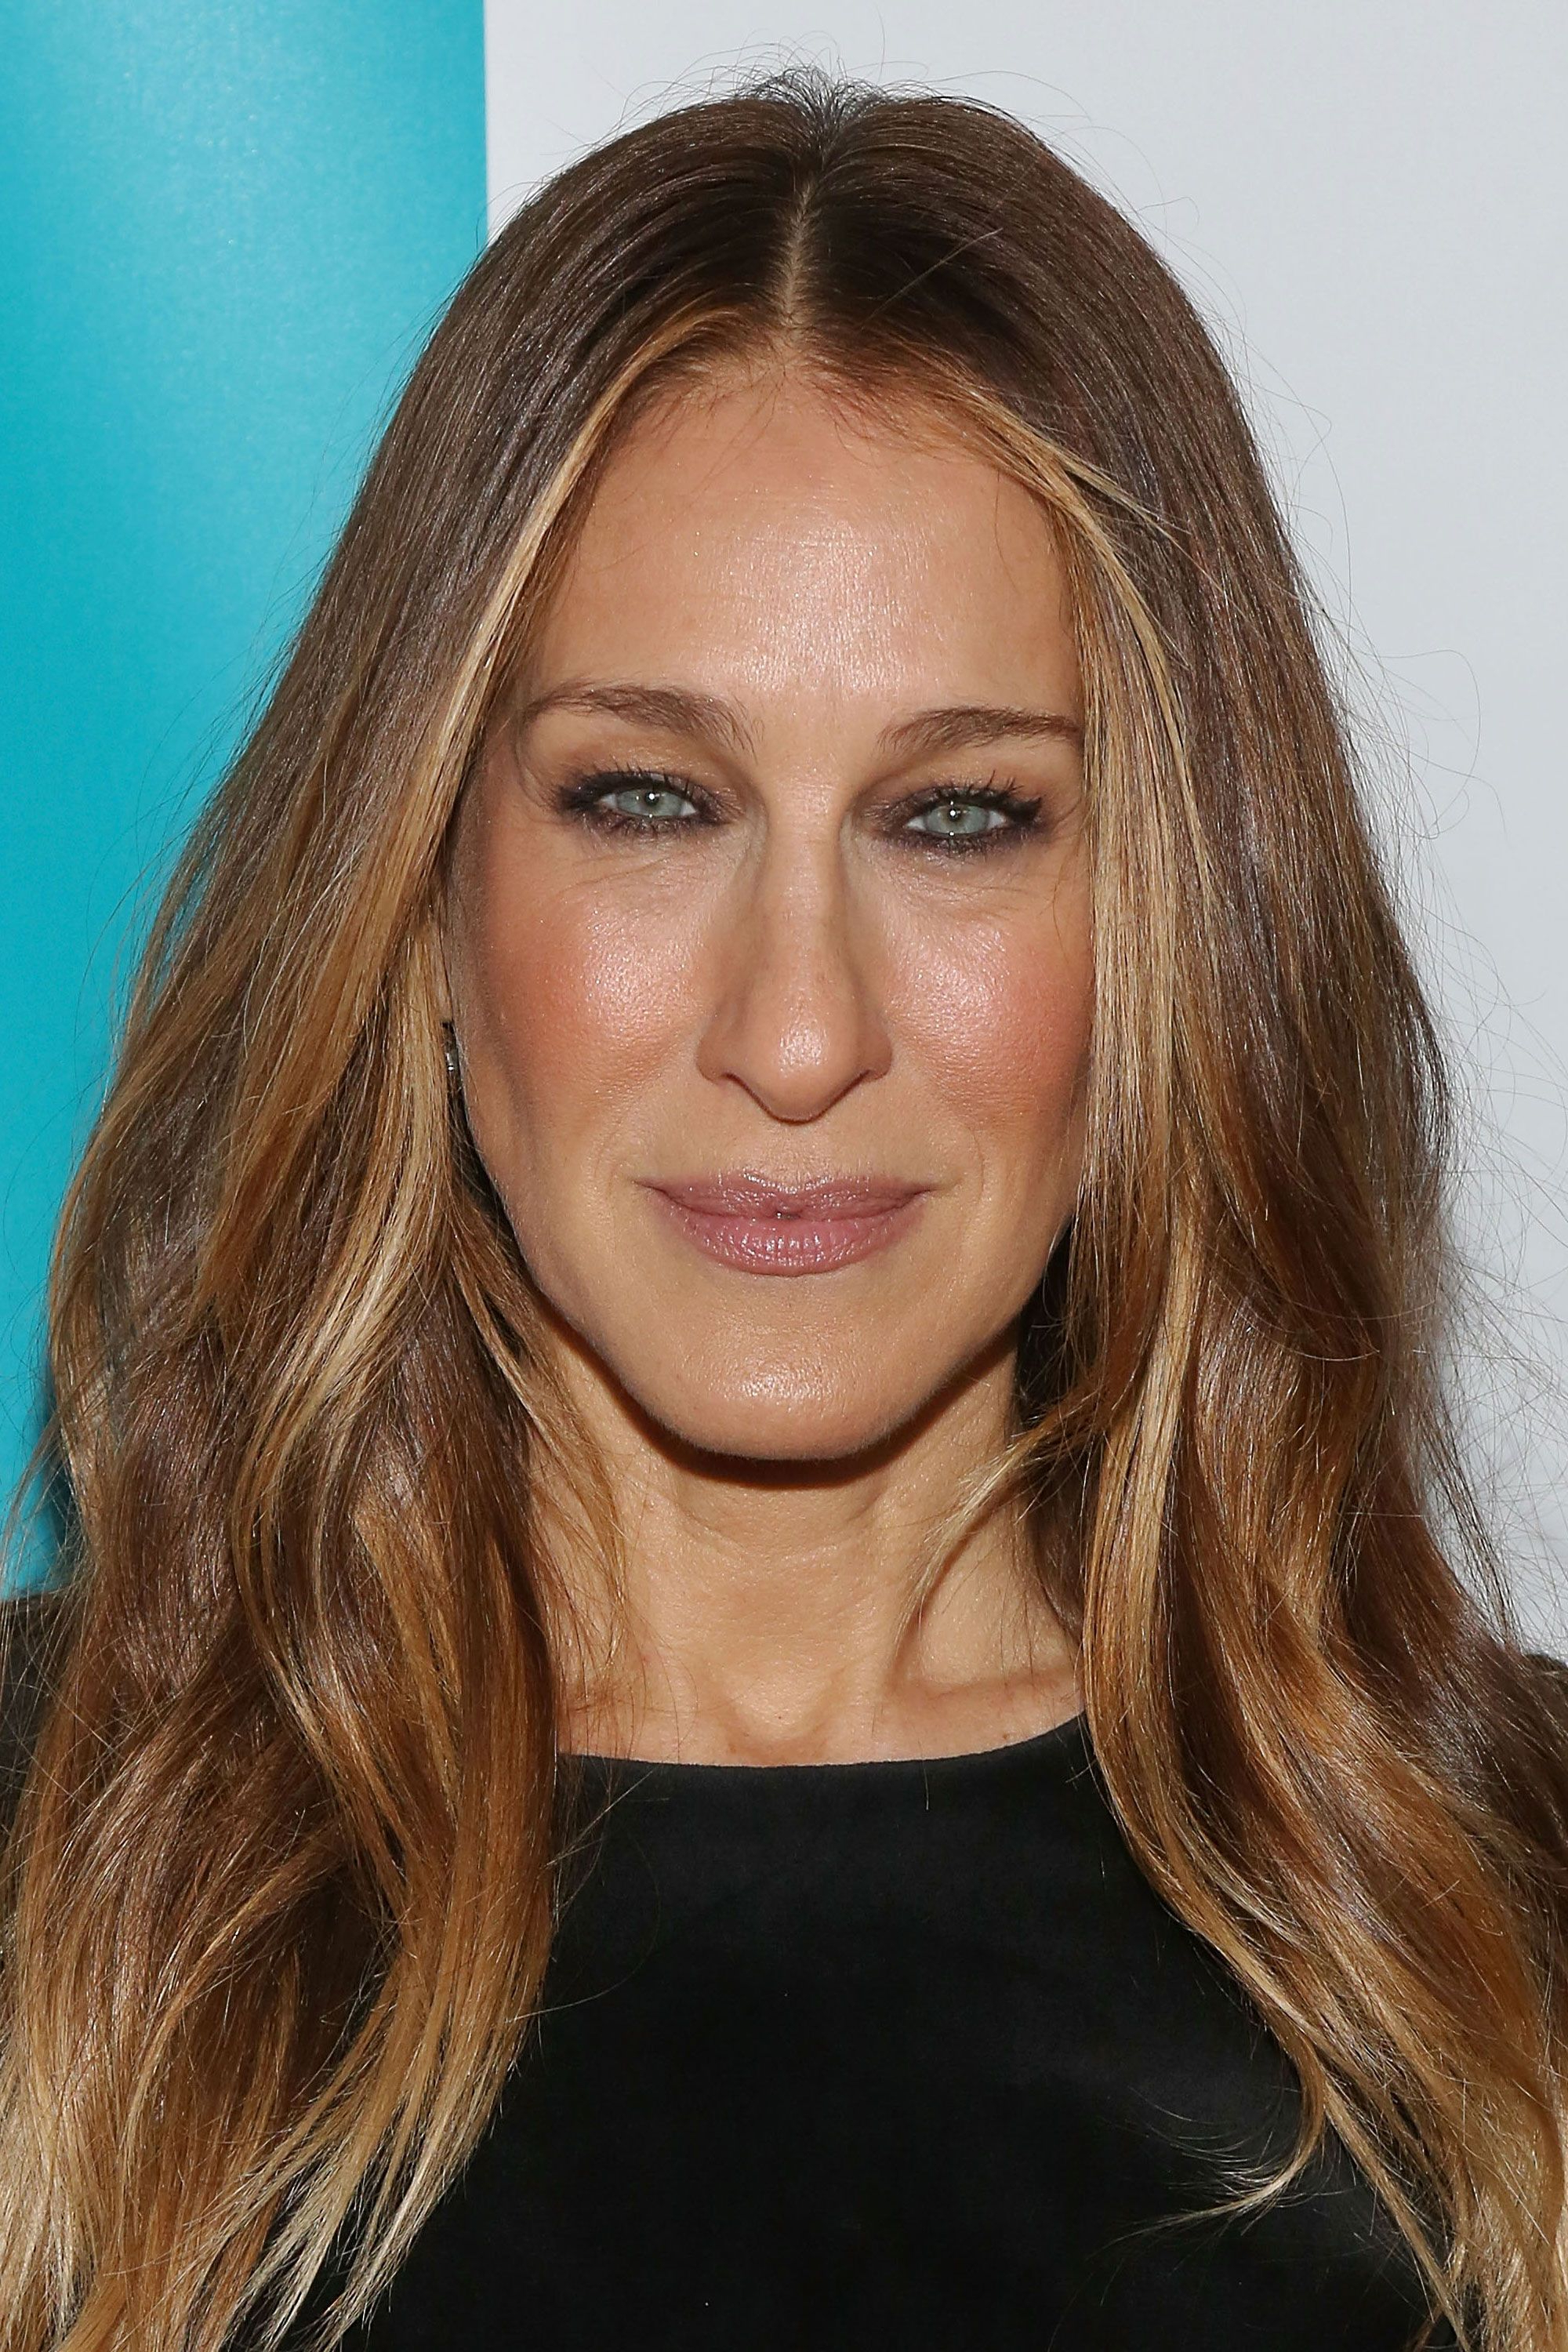 50 Hairstyles That Will Make You Look Younger – Haircut Ideas To With Regard To Sarah Jessica Parker Short Hairstyles (View 13 of 25)